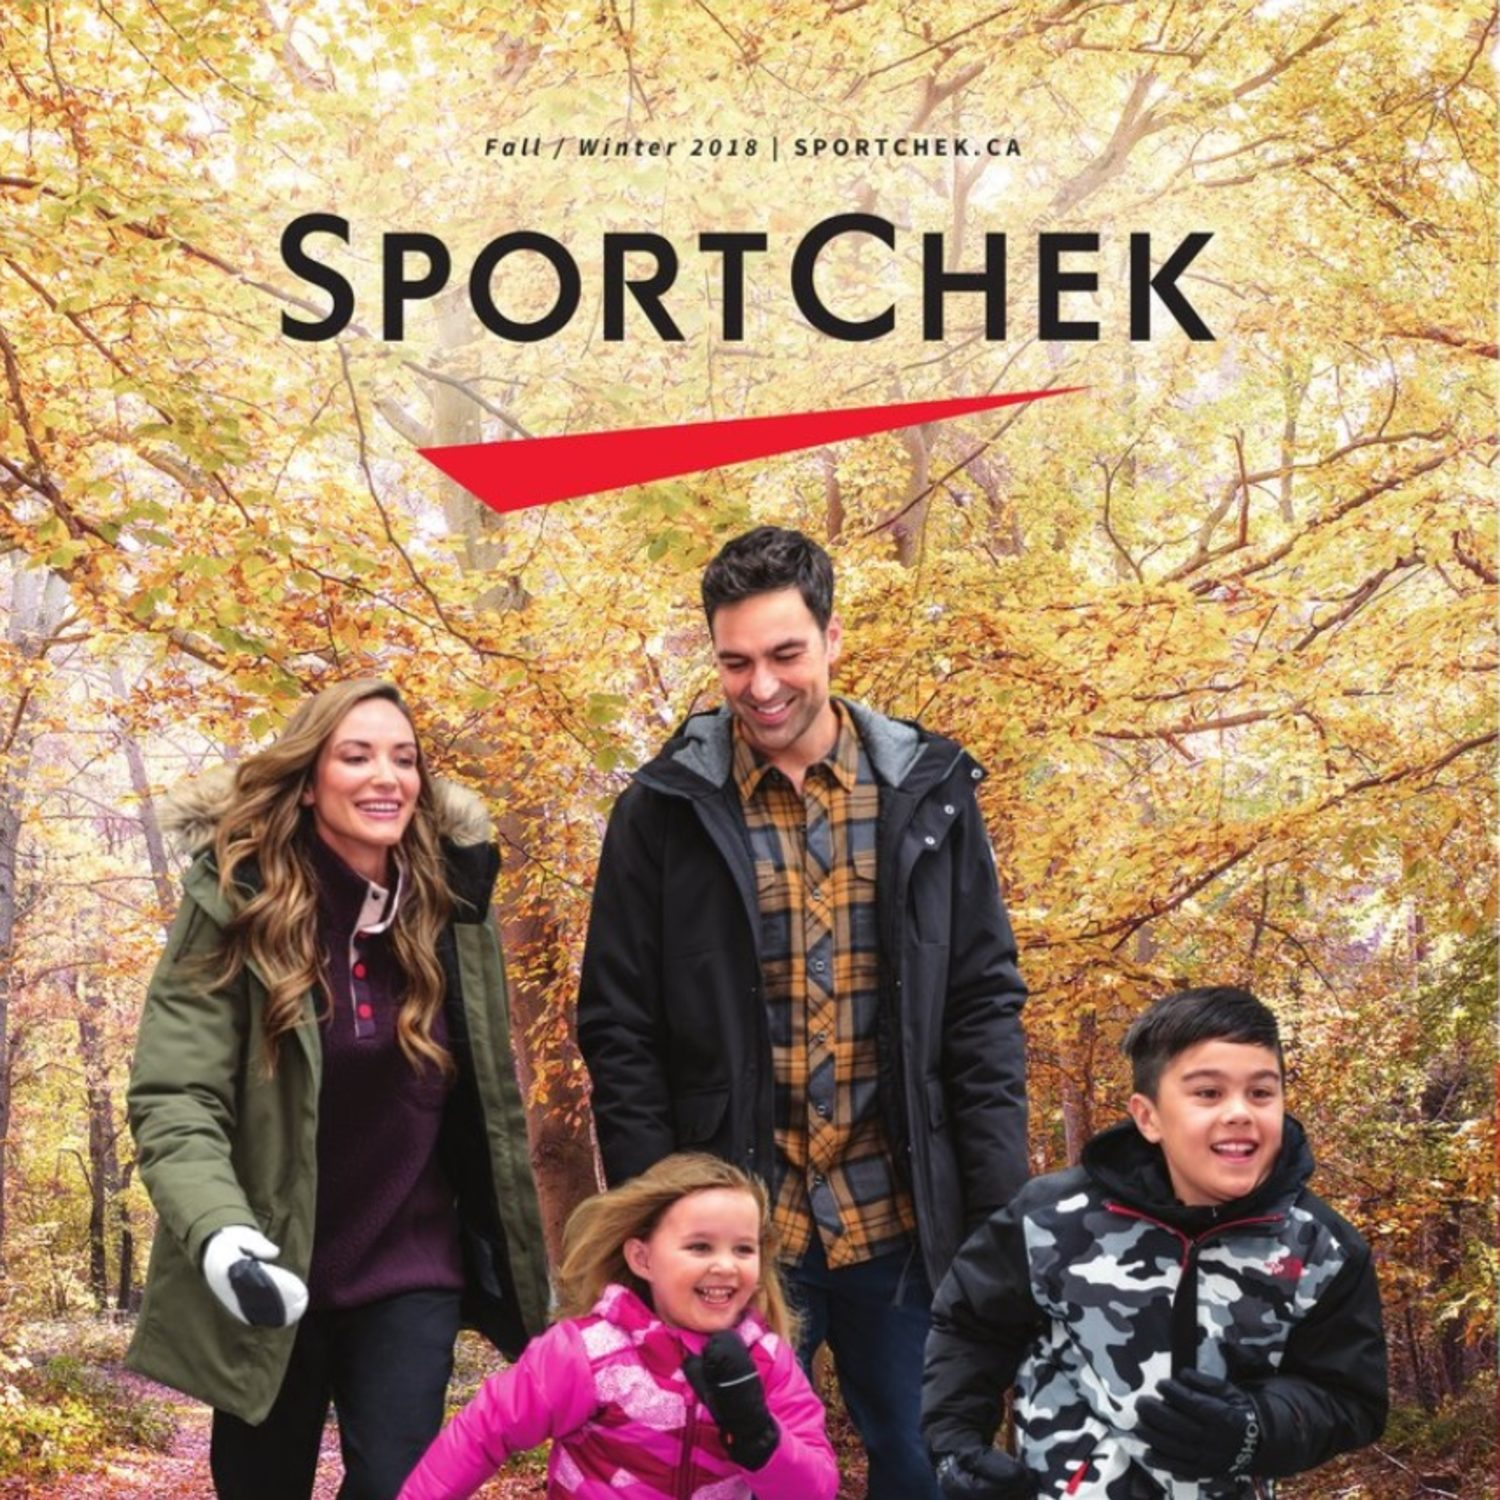 36e7fc0d6339 Sport Chek Weekly Flyer - Fall Winter 2018 - Nov 1 – Dec 5 ...